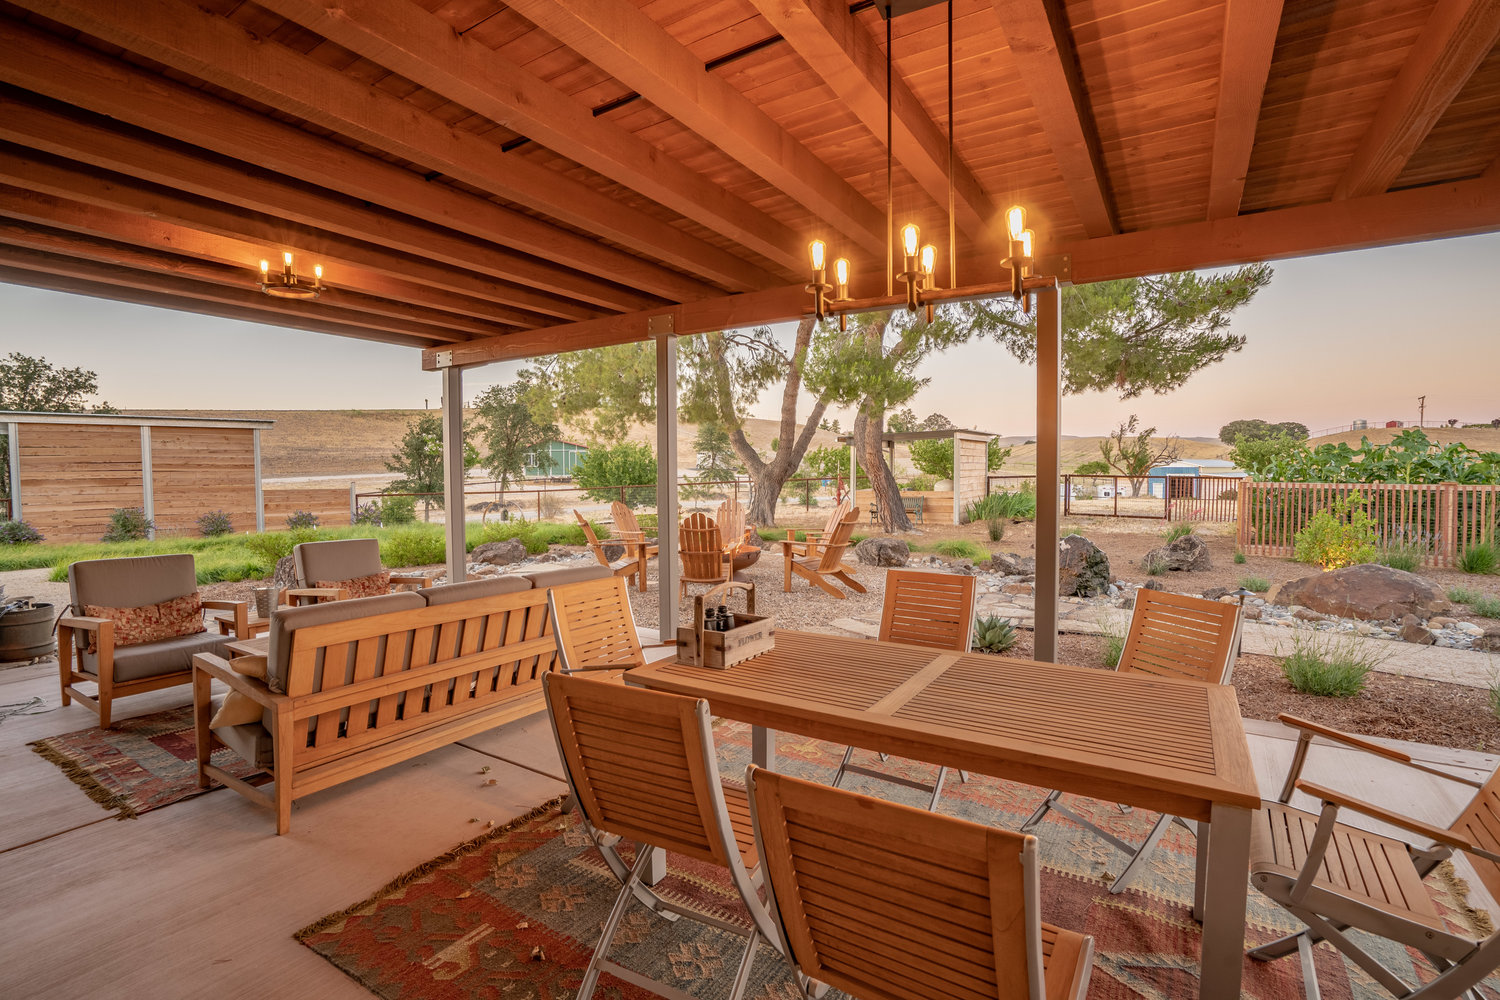 custom-pergola-dining-and-lounge.jpg